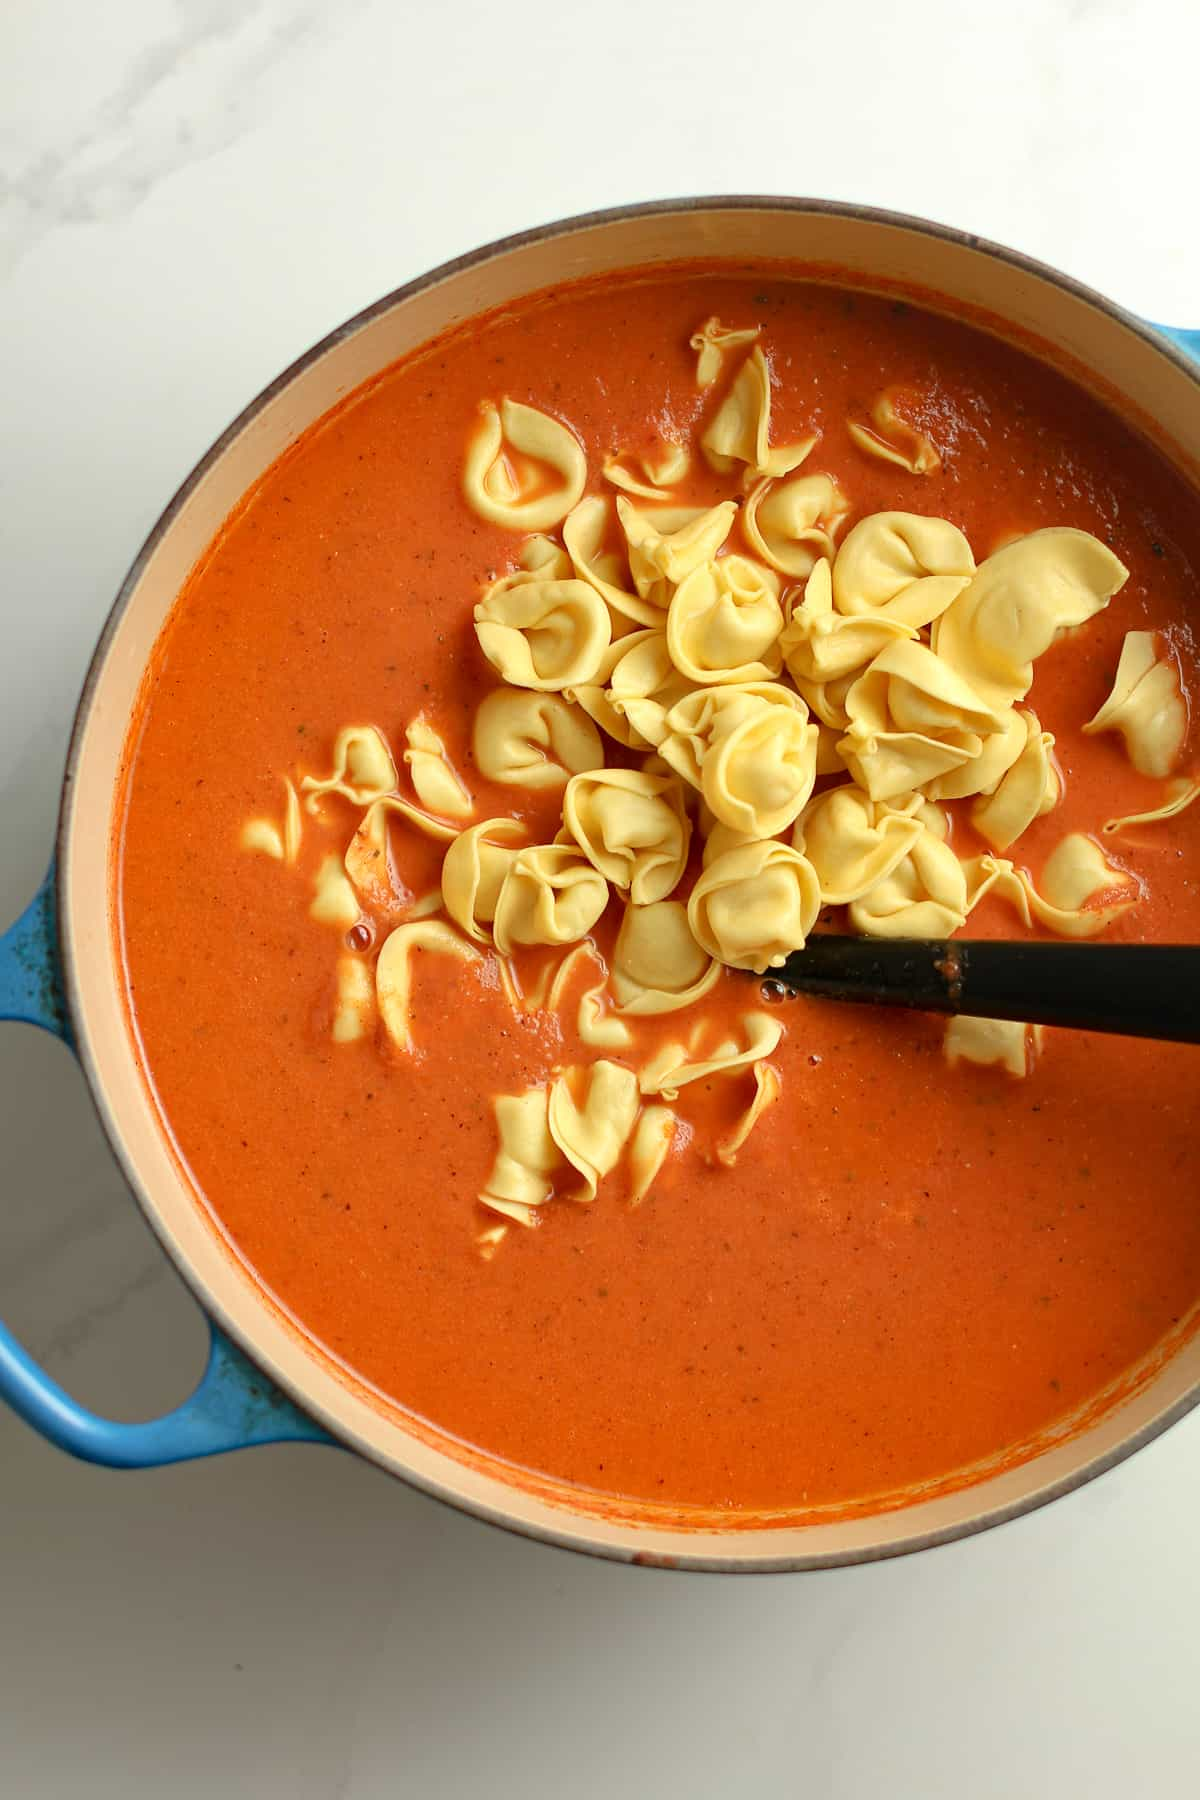 The pot of soup with the tortellini added in.